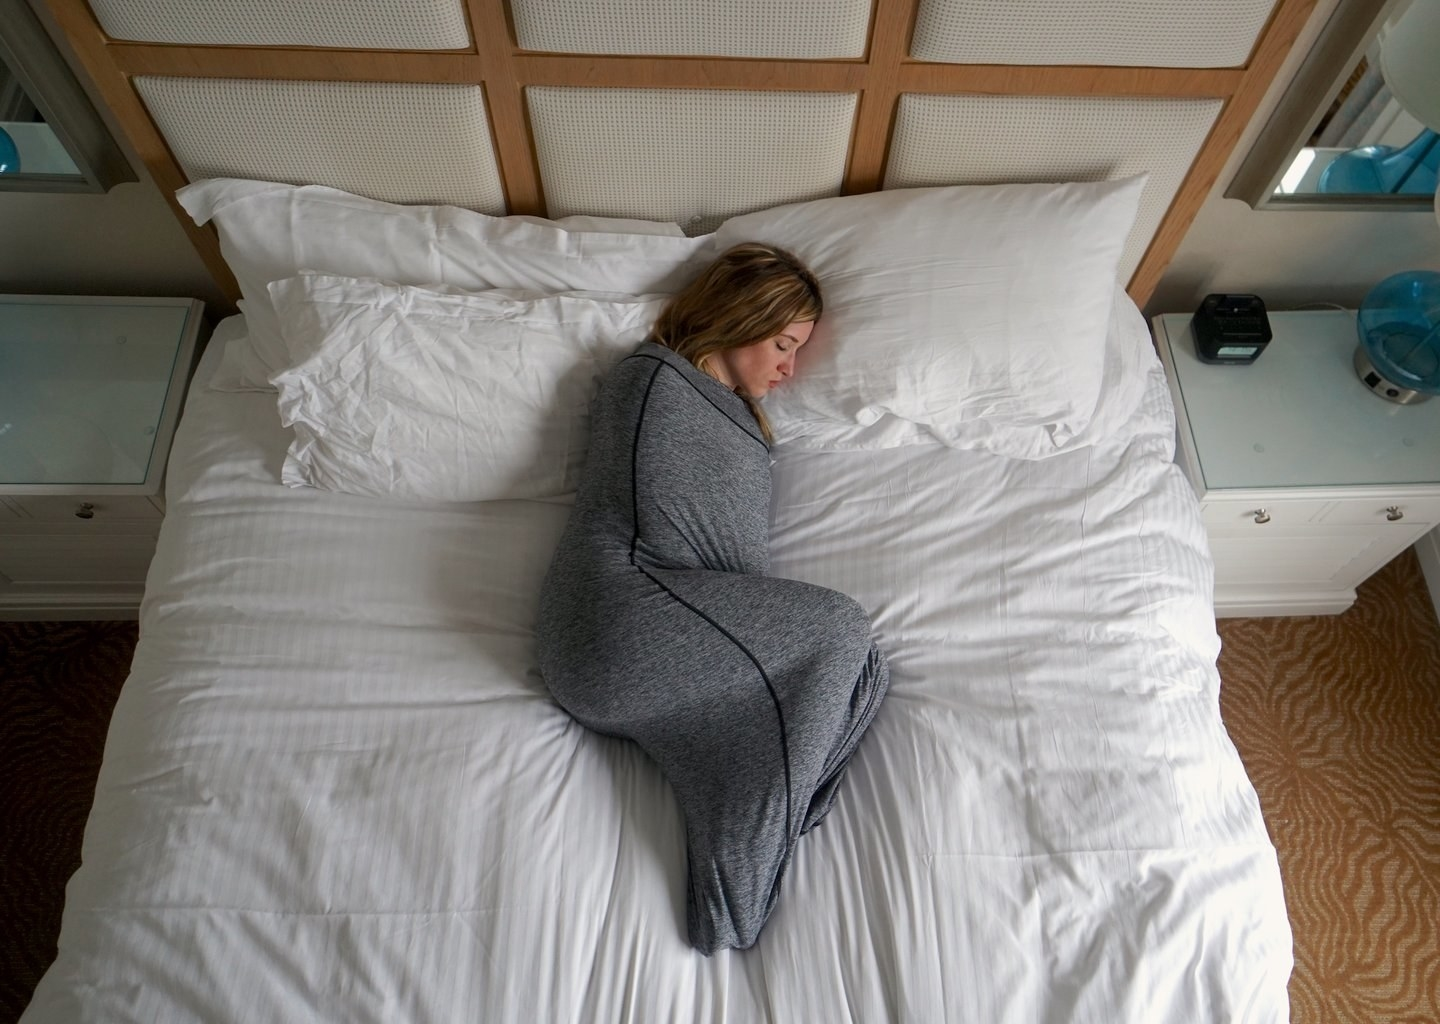 Model curled up in bed with a sleep pod